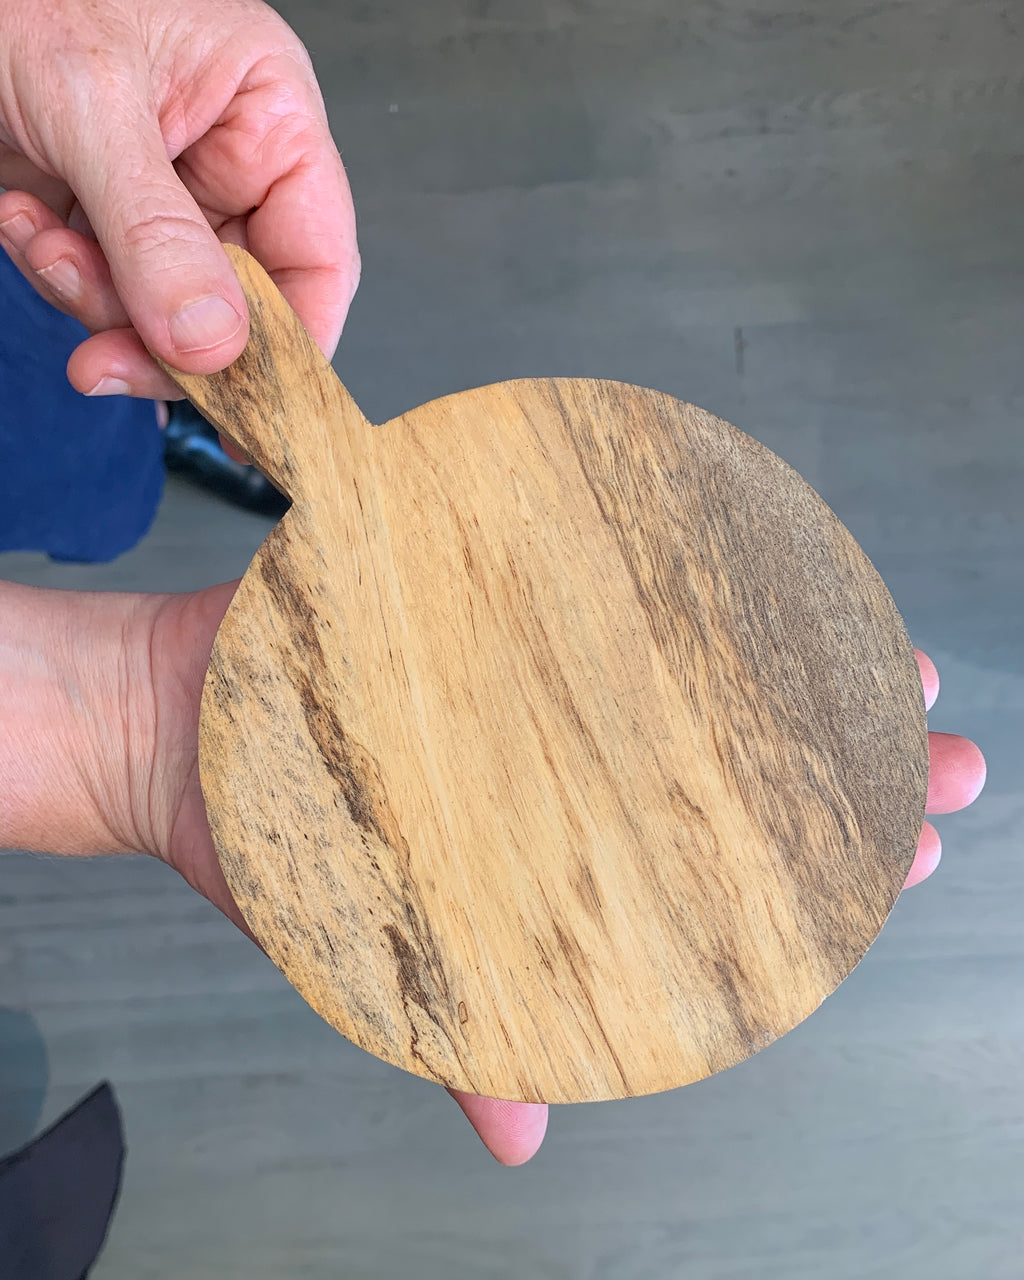 Mango Wood Board: Round